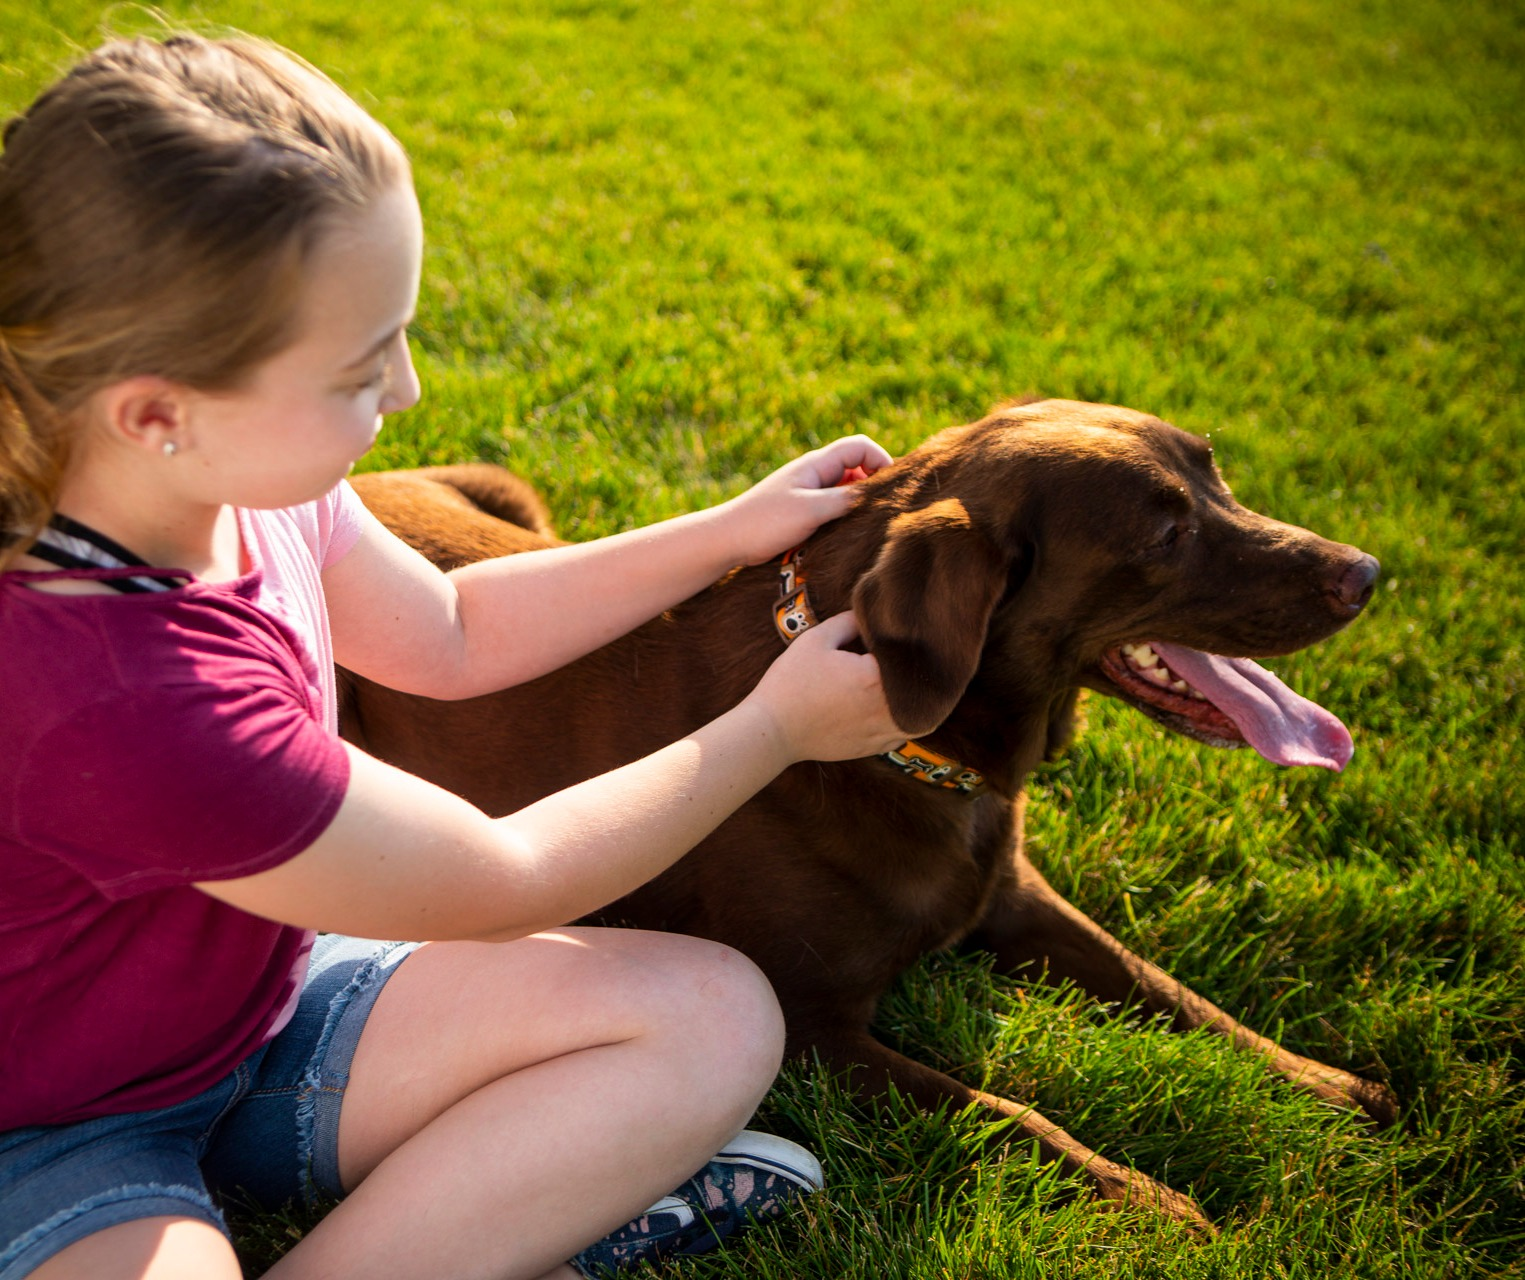 Child and dog in lawn with flea and tick control